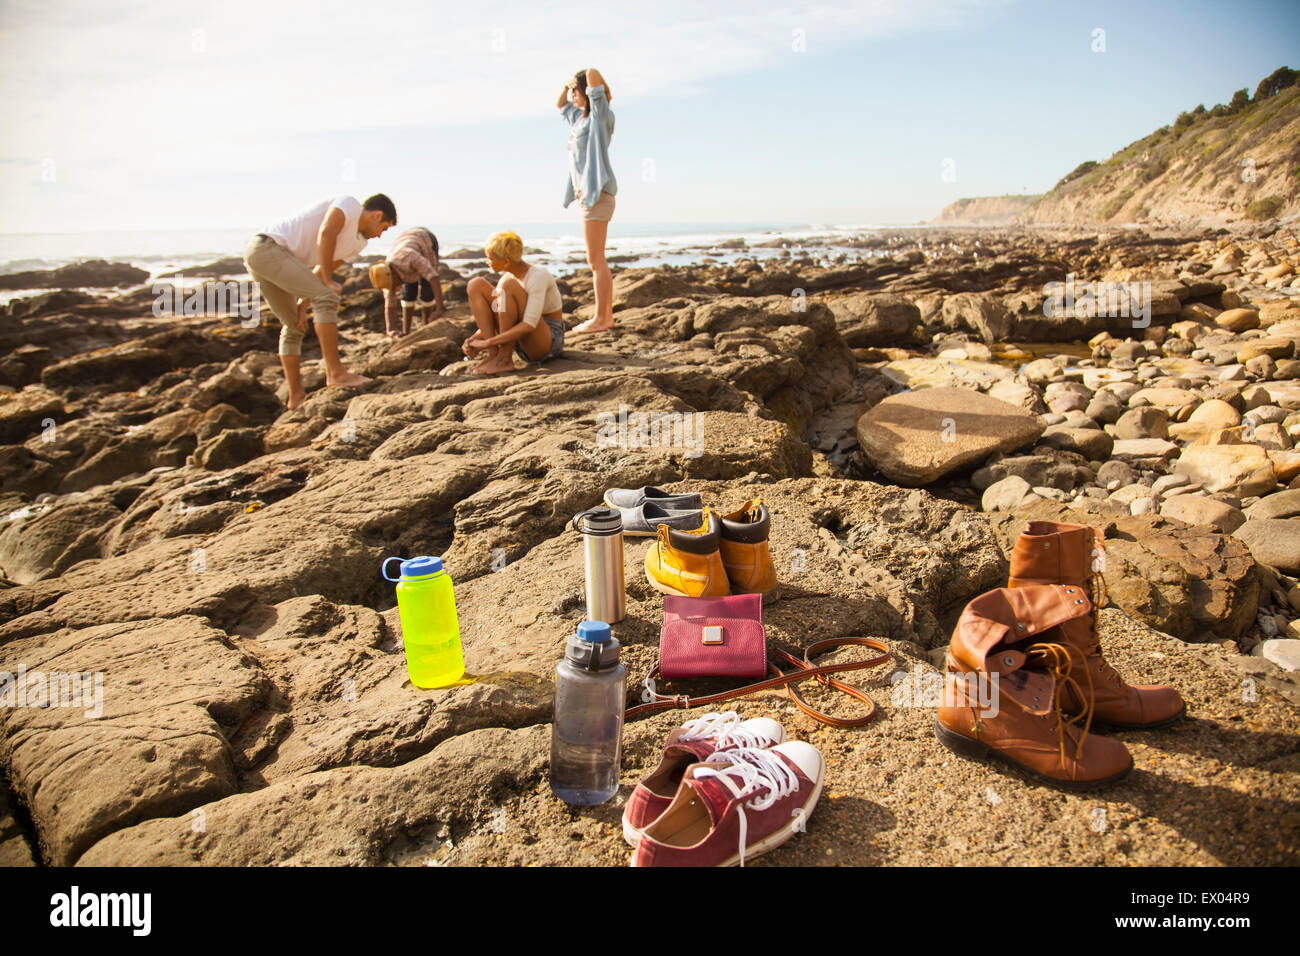 Group of friends exploring rock pools on beach, shoes and belongings in foreground - Stock Image